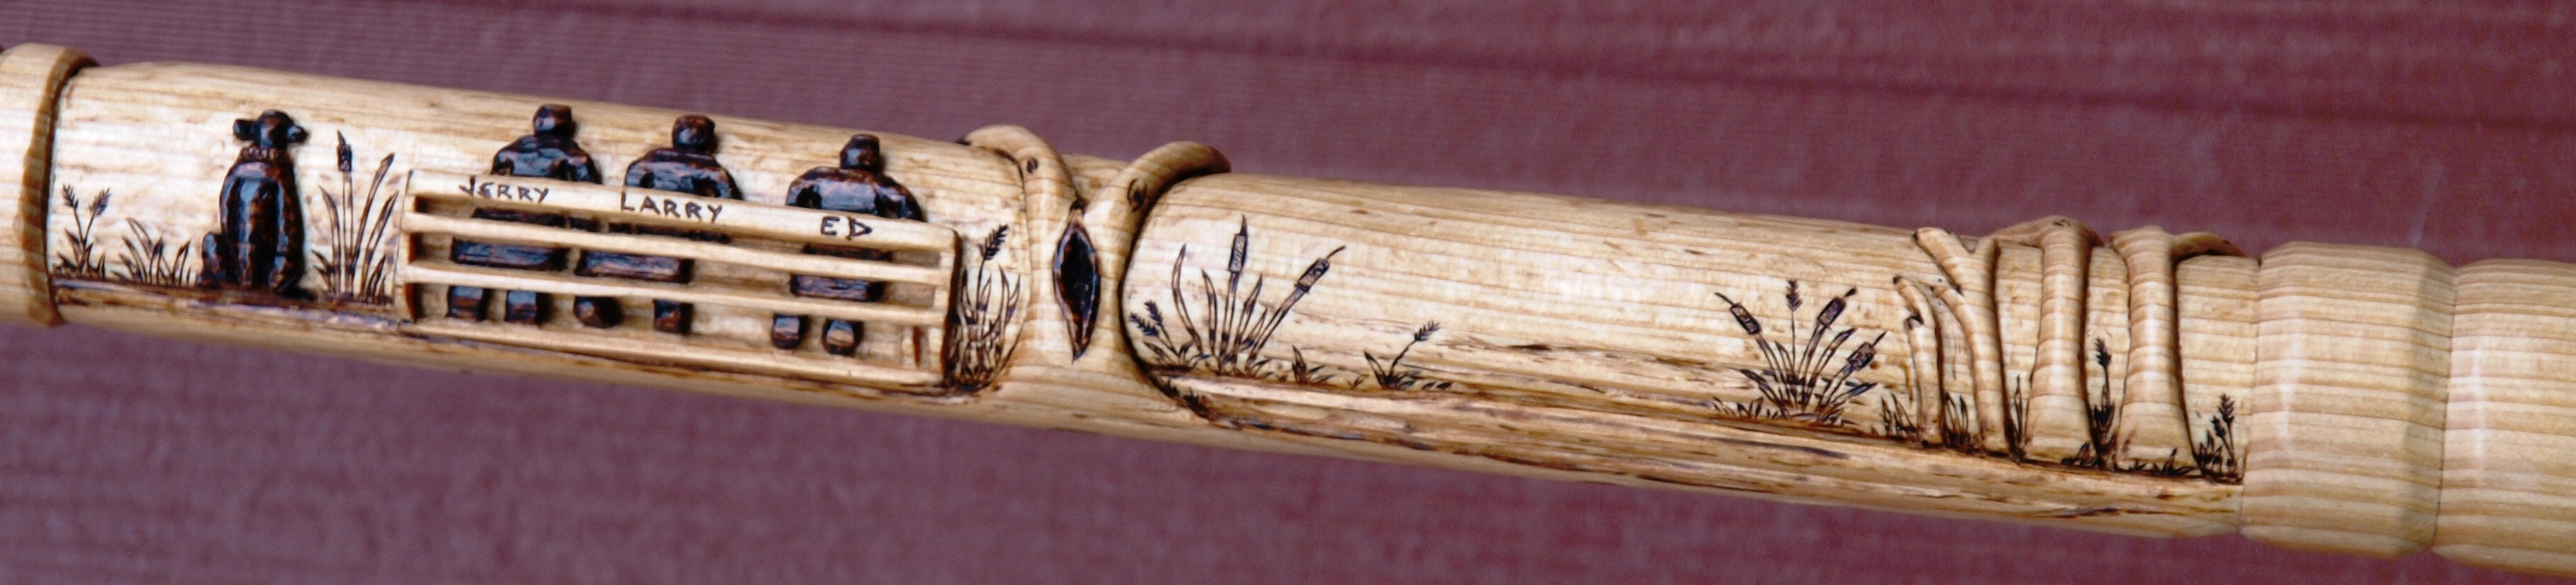 "Chinese Tallow ""Friendships"" Cane"